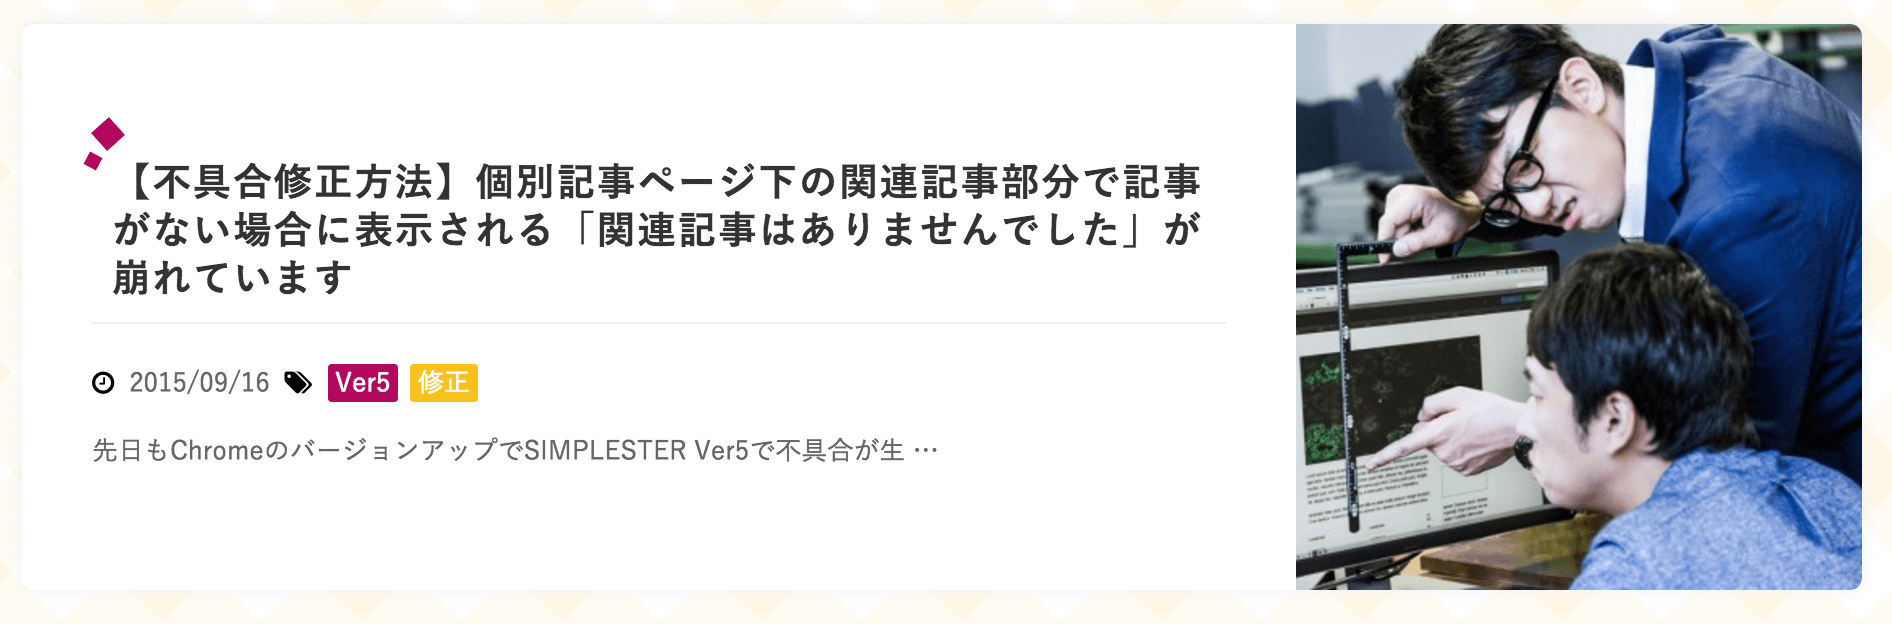 6_20151220_simplester-ver6